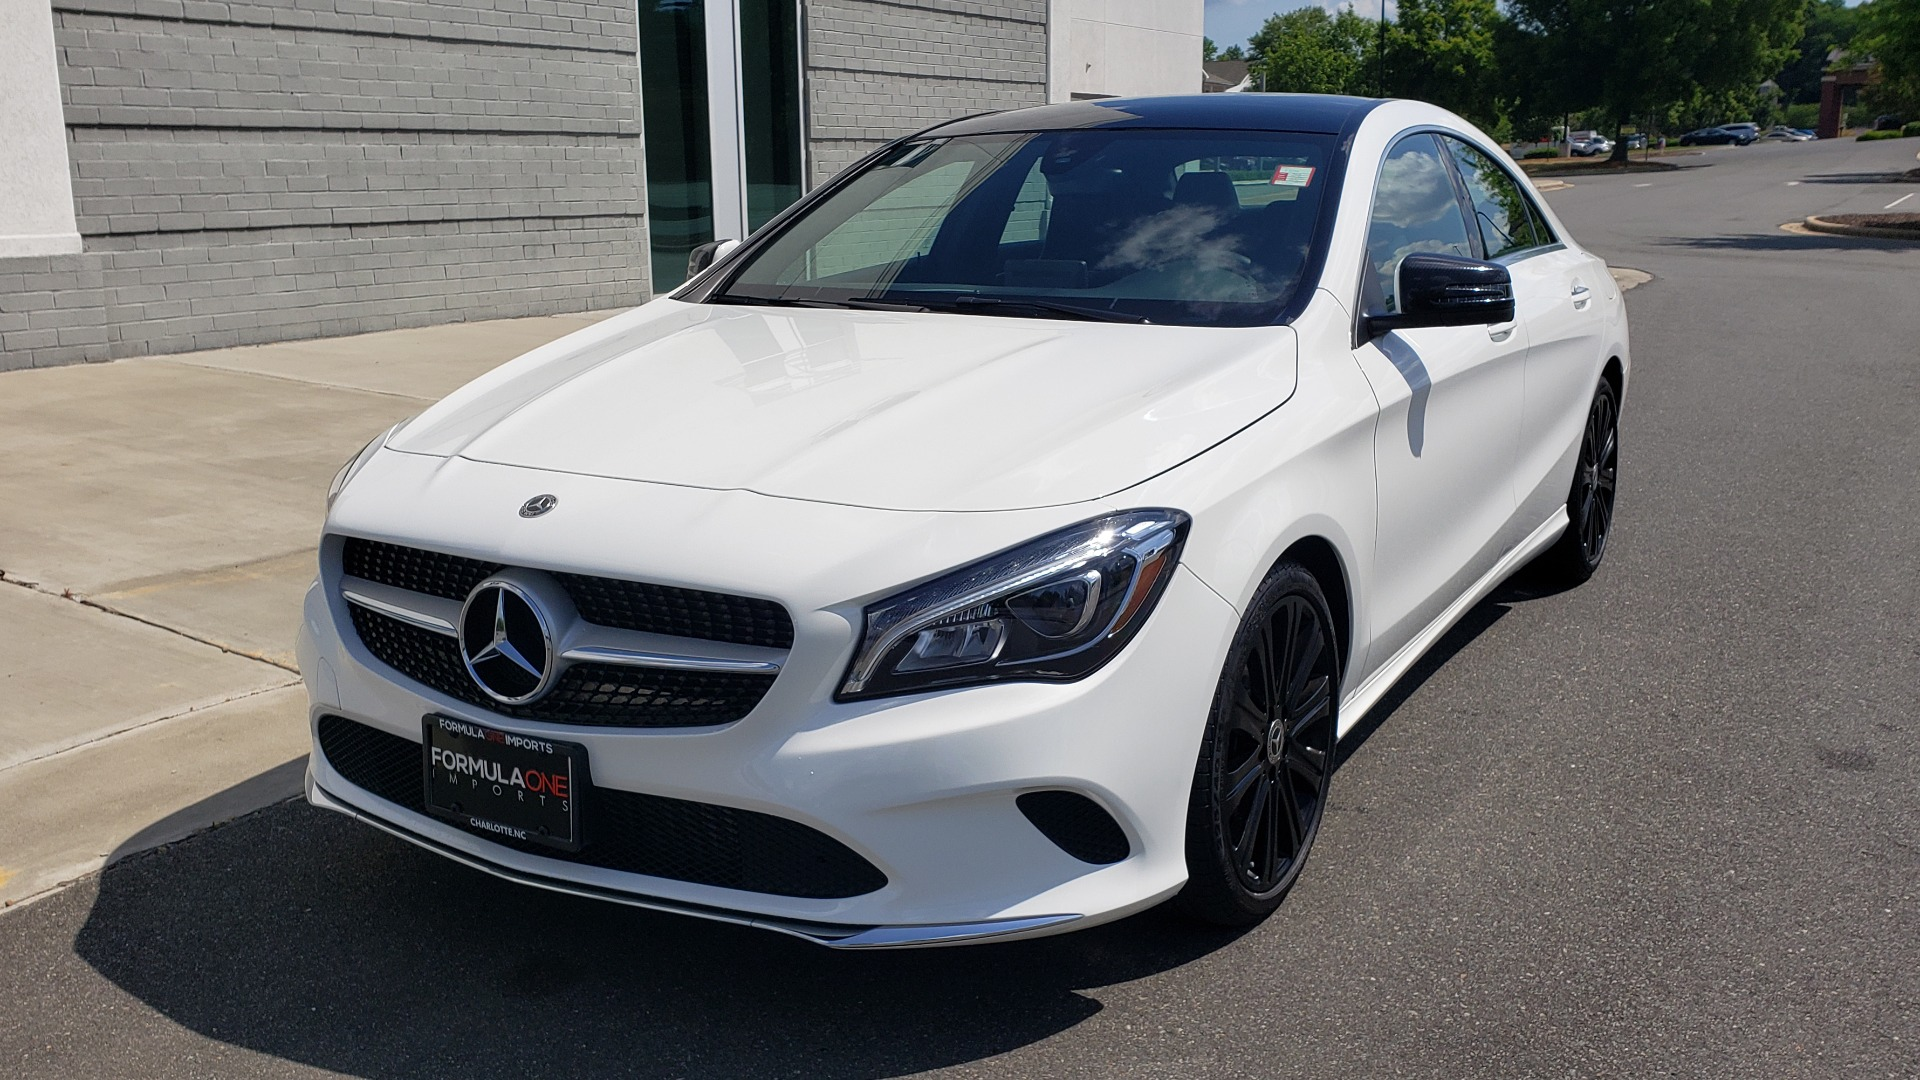 Used 2018 Mercedes-Benz CLA 250 4MATIC COUPE / PREMIUM / PANO-ROOF / APPLE / REARVIEW for sale Sold at Formula Imports in Charlotte NC 28227 3